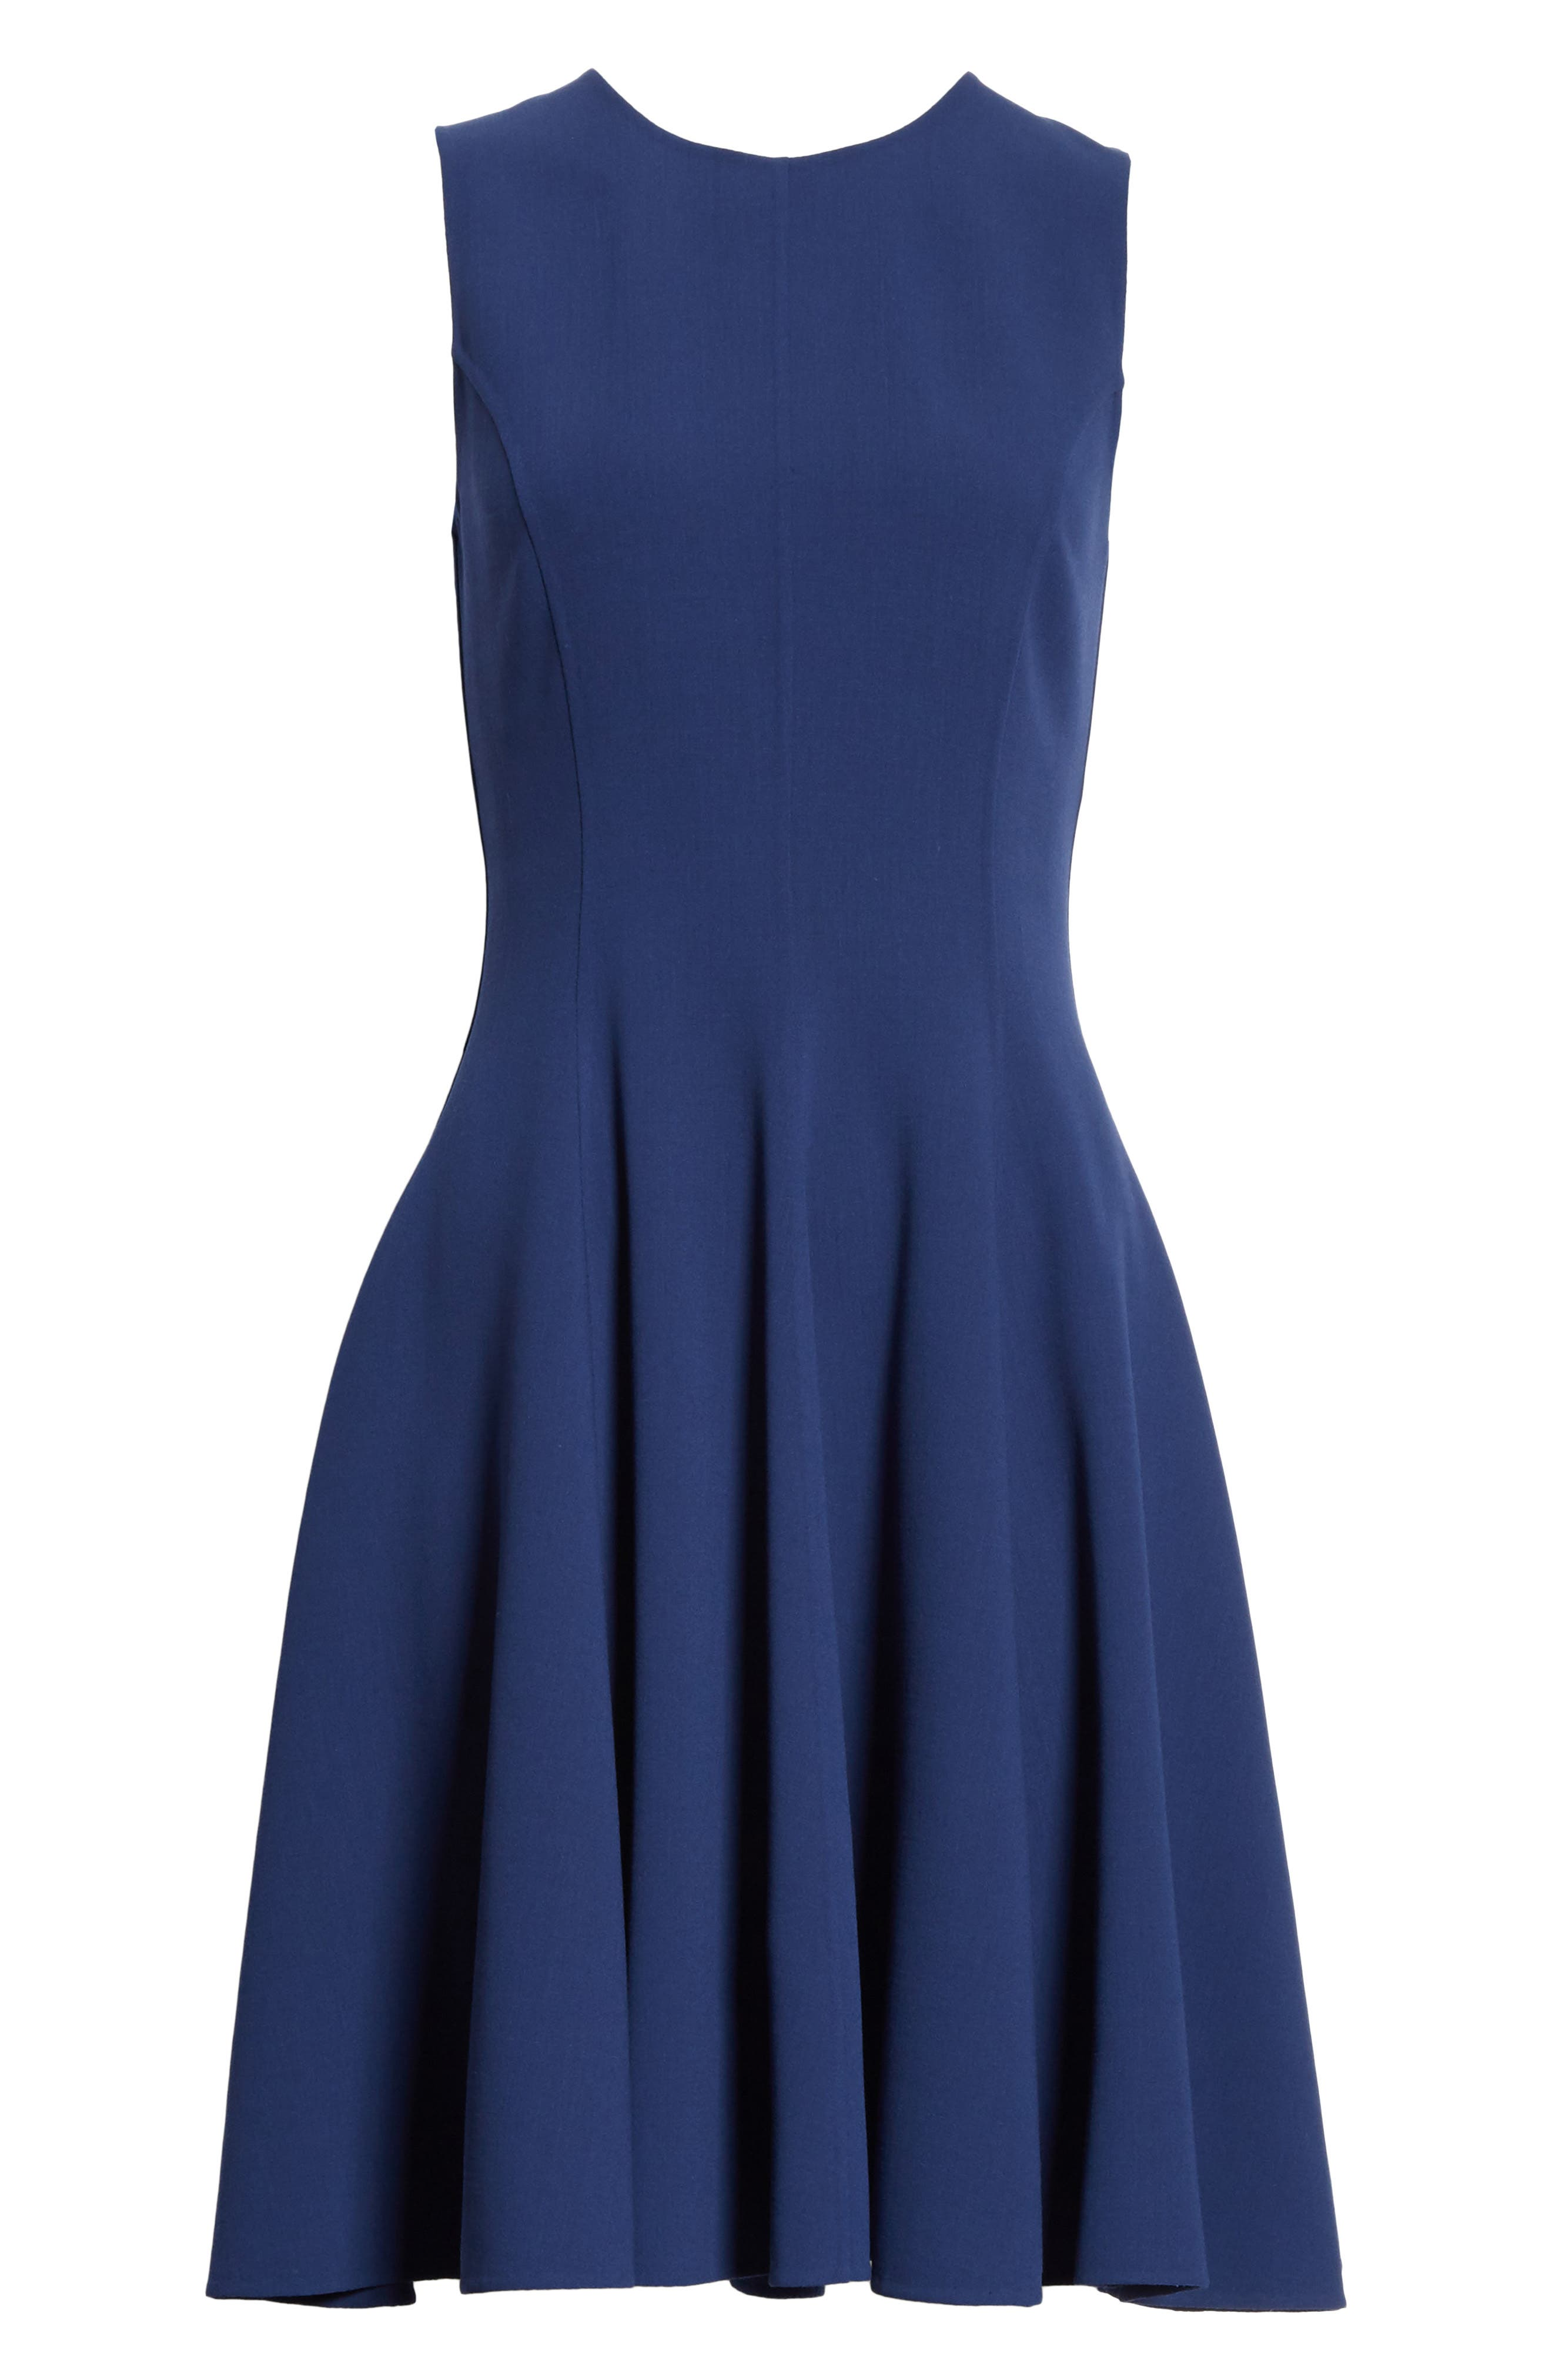 Stretch Wool Bell Dress,                             Alternate thumbnail 6, color,                             489